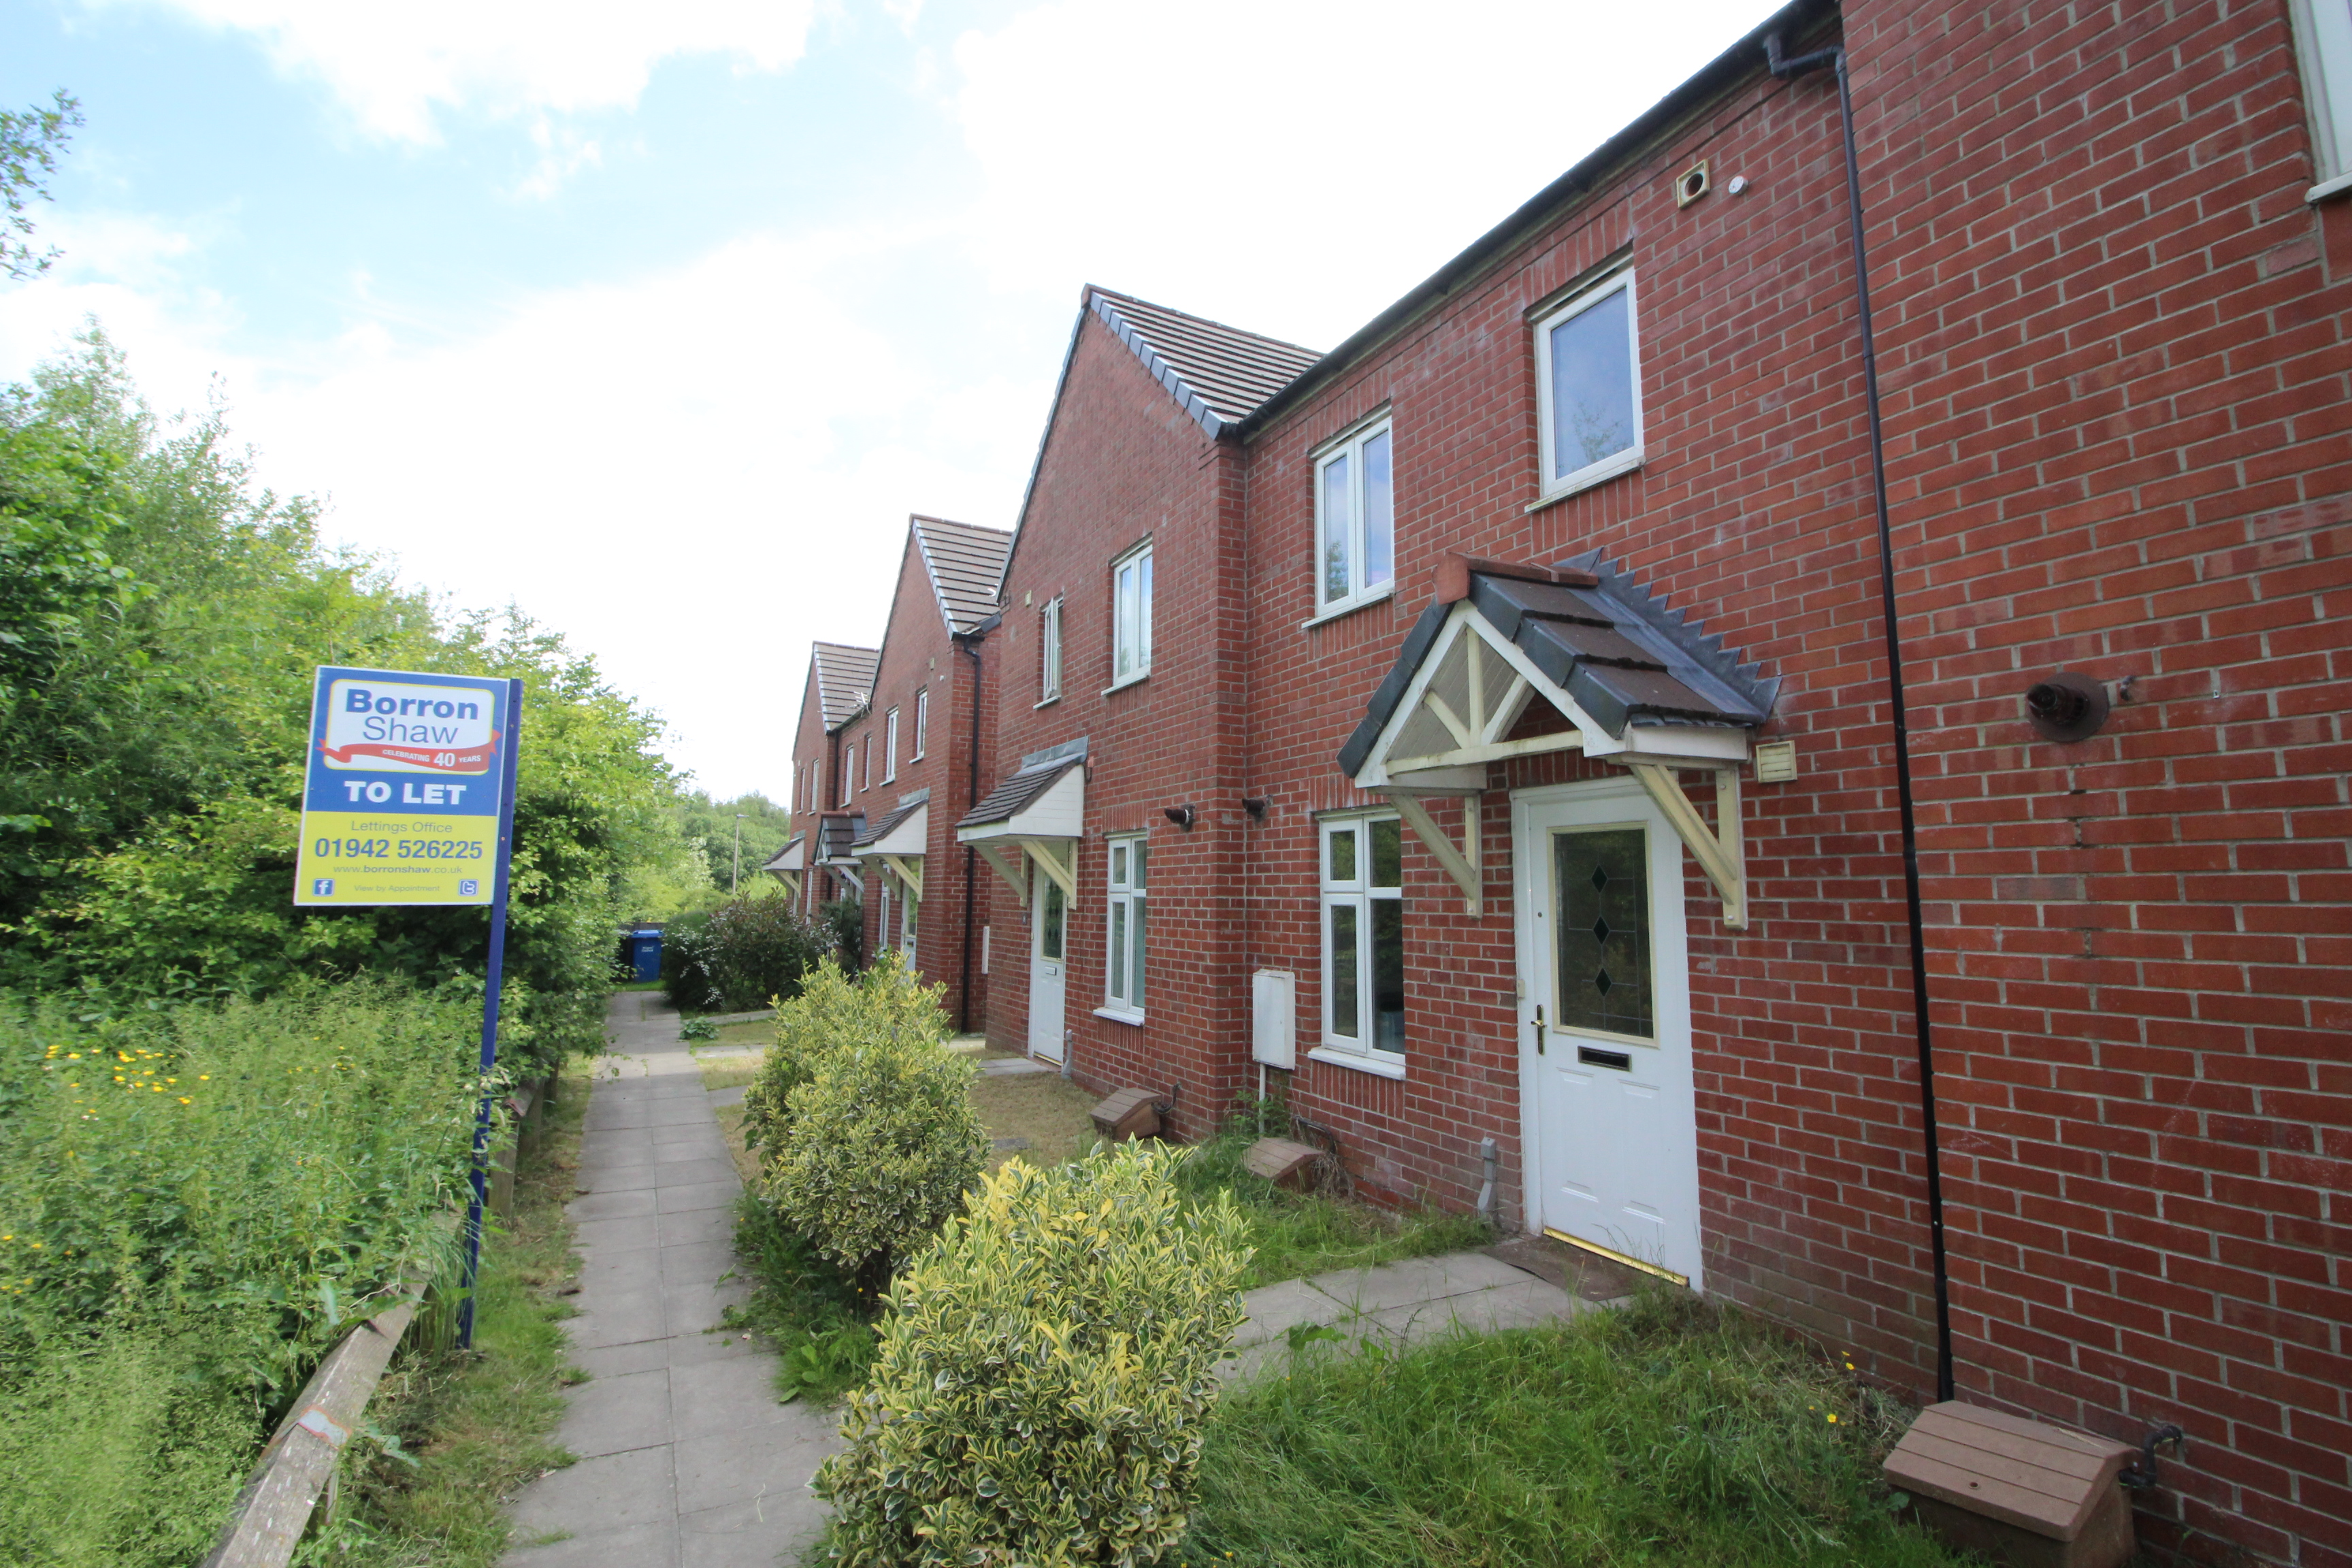 Kinsley Close, Spring View Wn3, 3 Bedroom Town House To